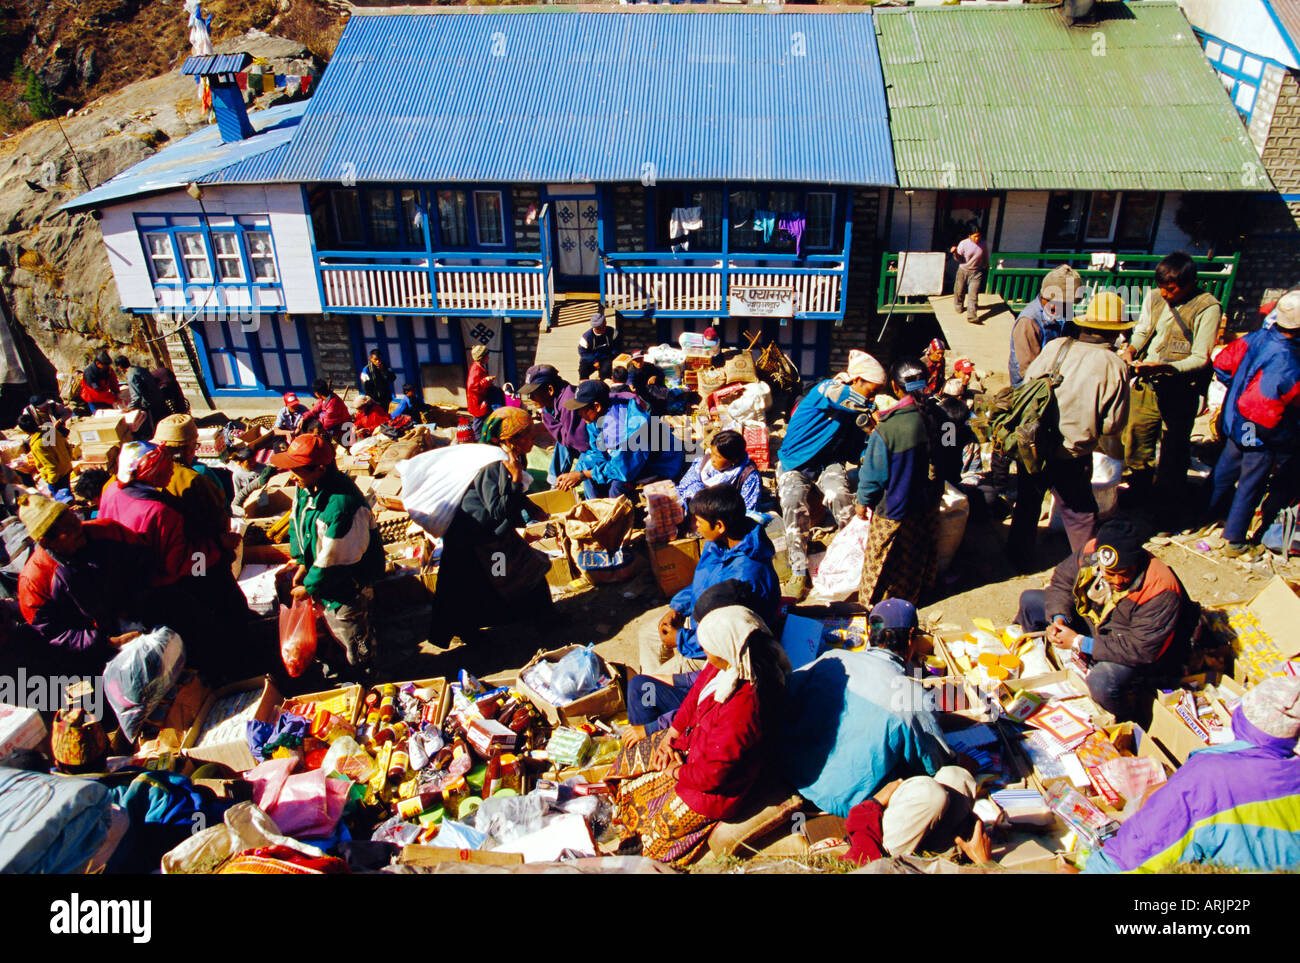 The Saturday Market, Namche Bazaar, Everest Region, Nepal - Stock Image